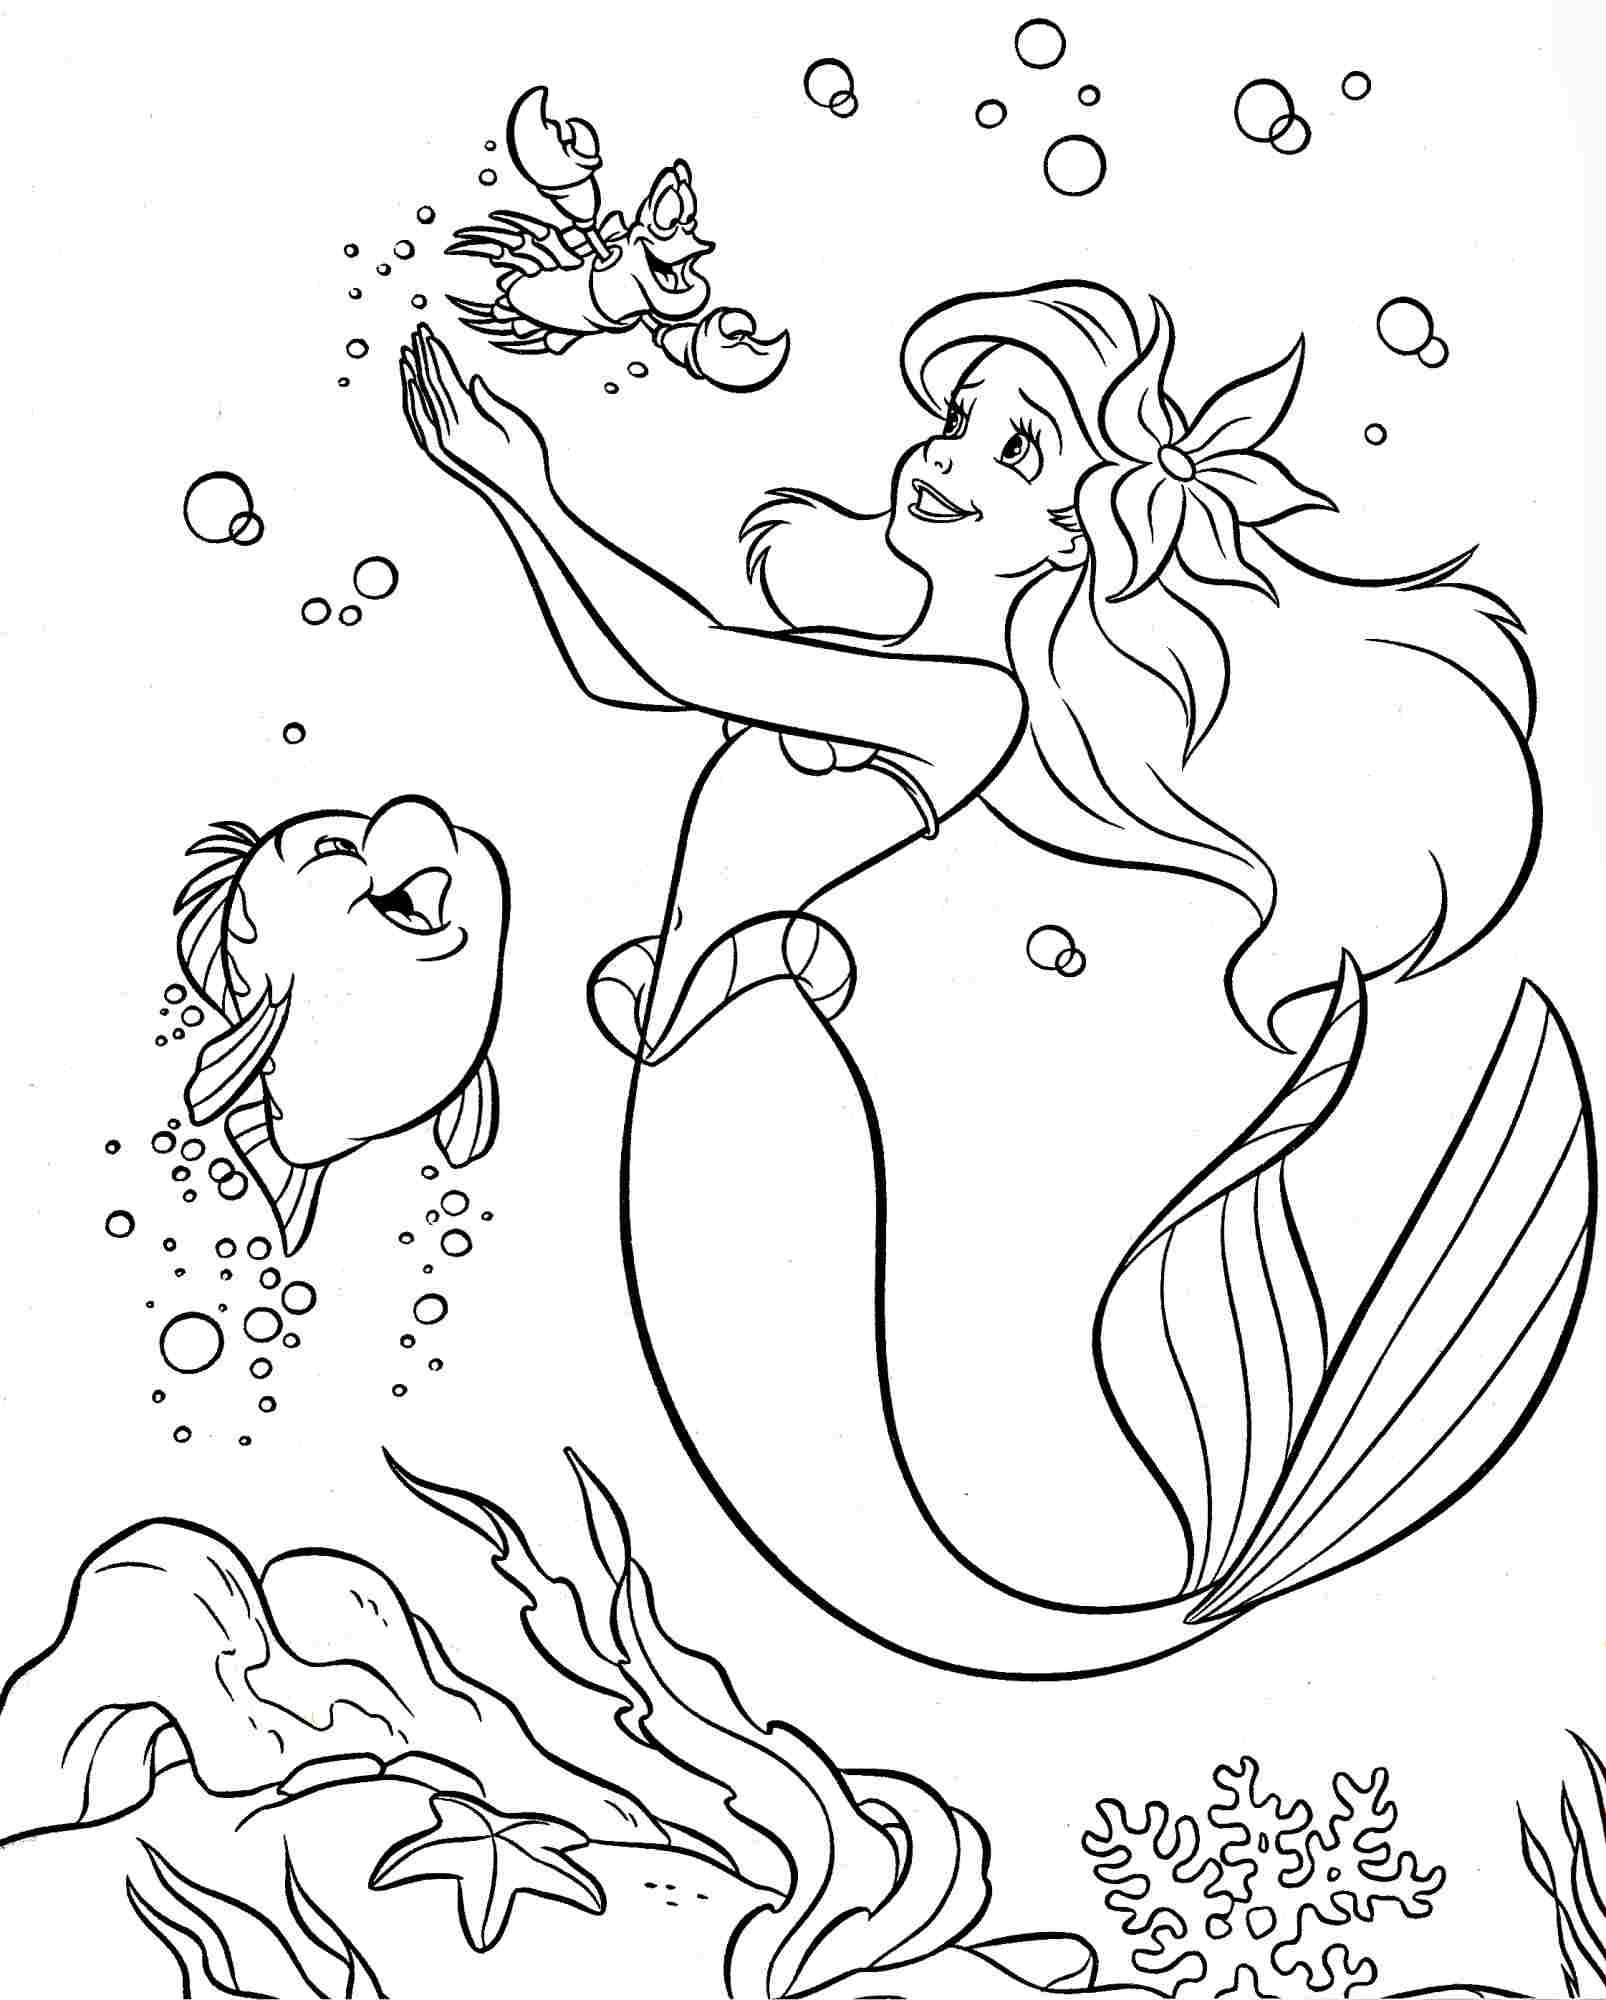 Little mermaid disney ariel coloring pages - Colouring Pages Coloring Pages Disney Princess Little Mermaid Ariel For Kids Free Printable For Kids